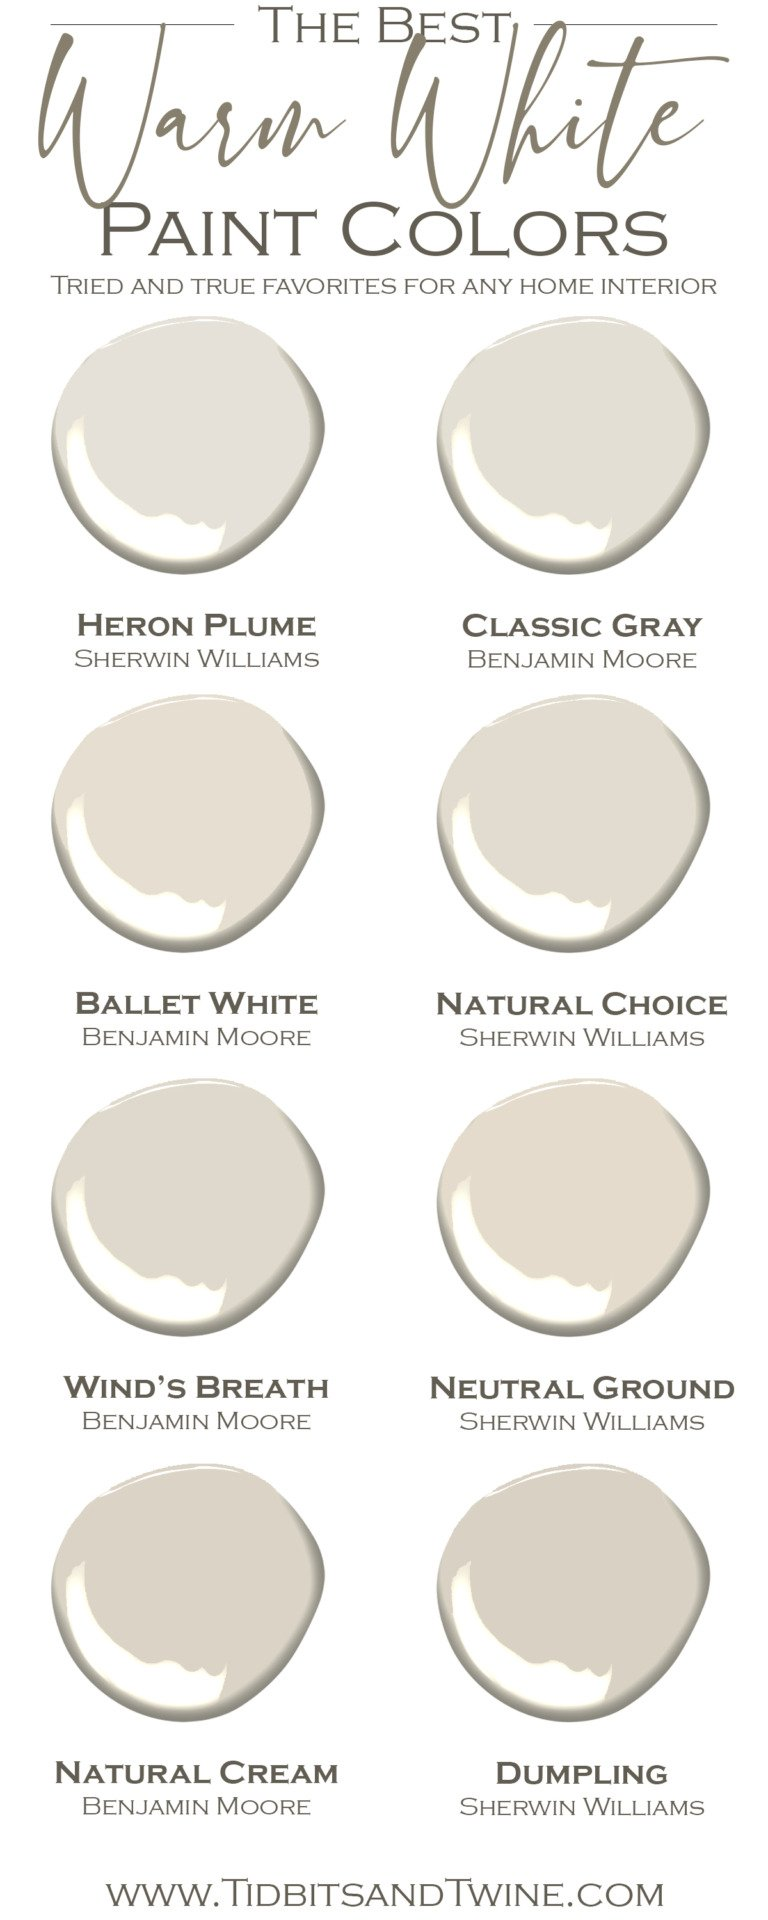 8 Beautiful Warm Whites for Your Home!